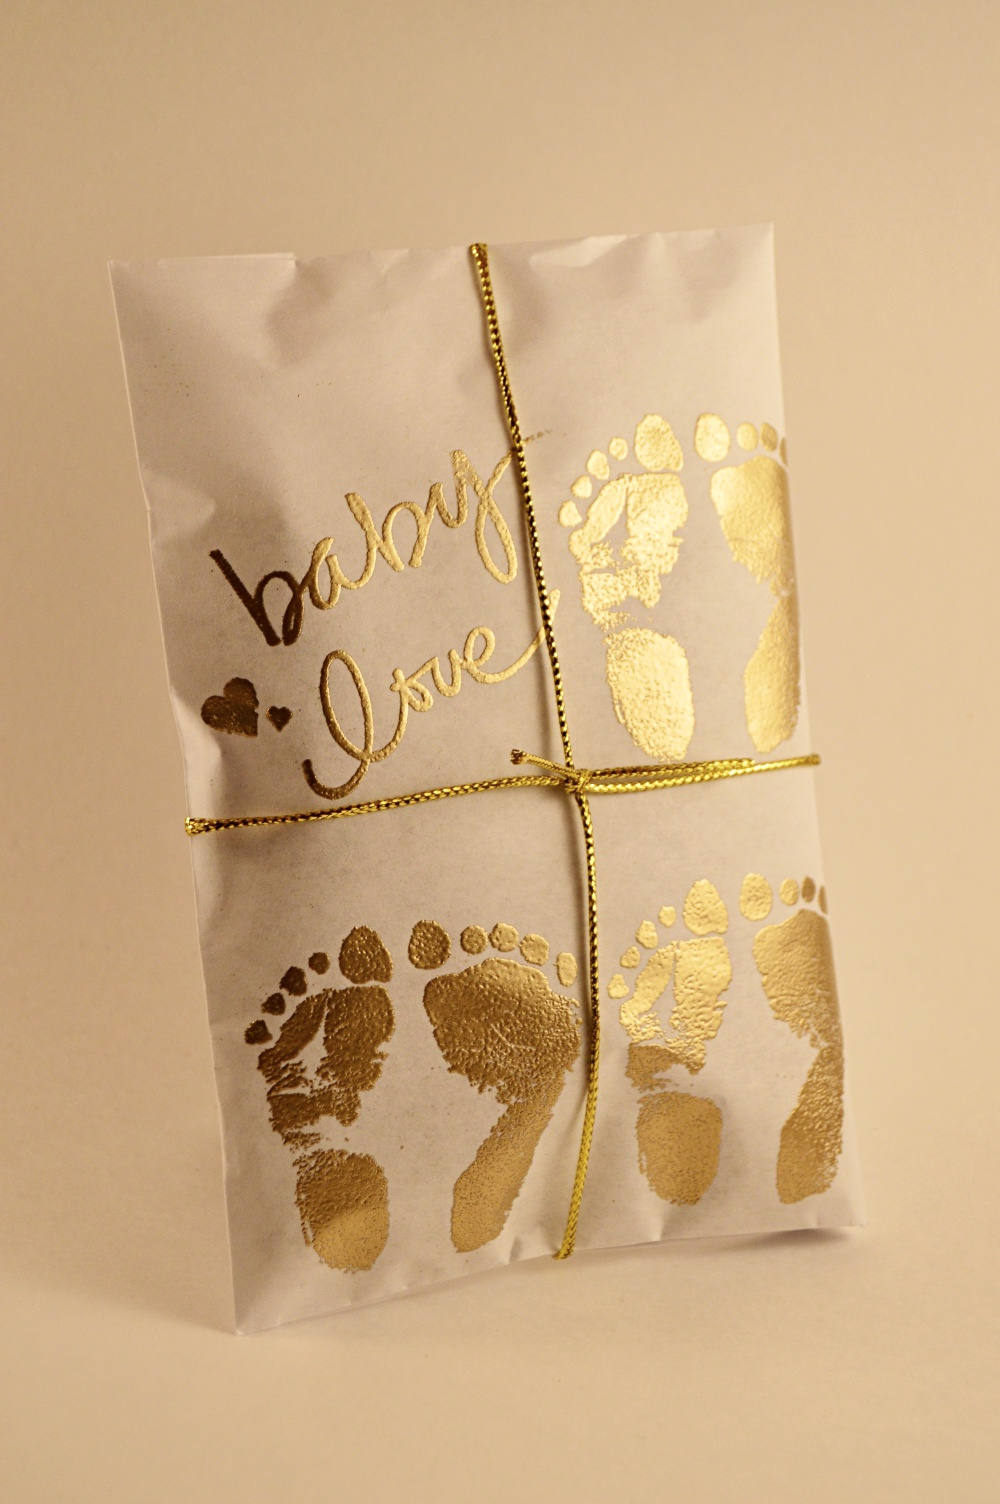 25 Triplet Baby Shower Favors. Gold and Paper Favors. Fresh Roasted Coffee